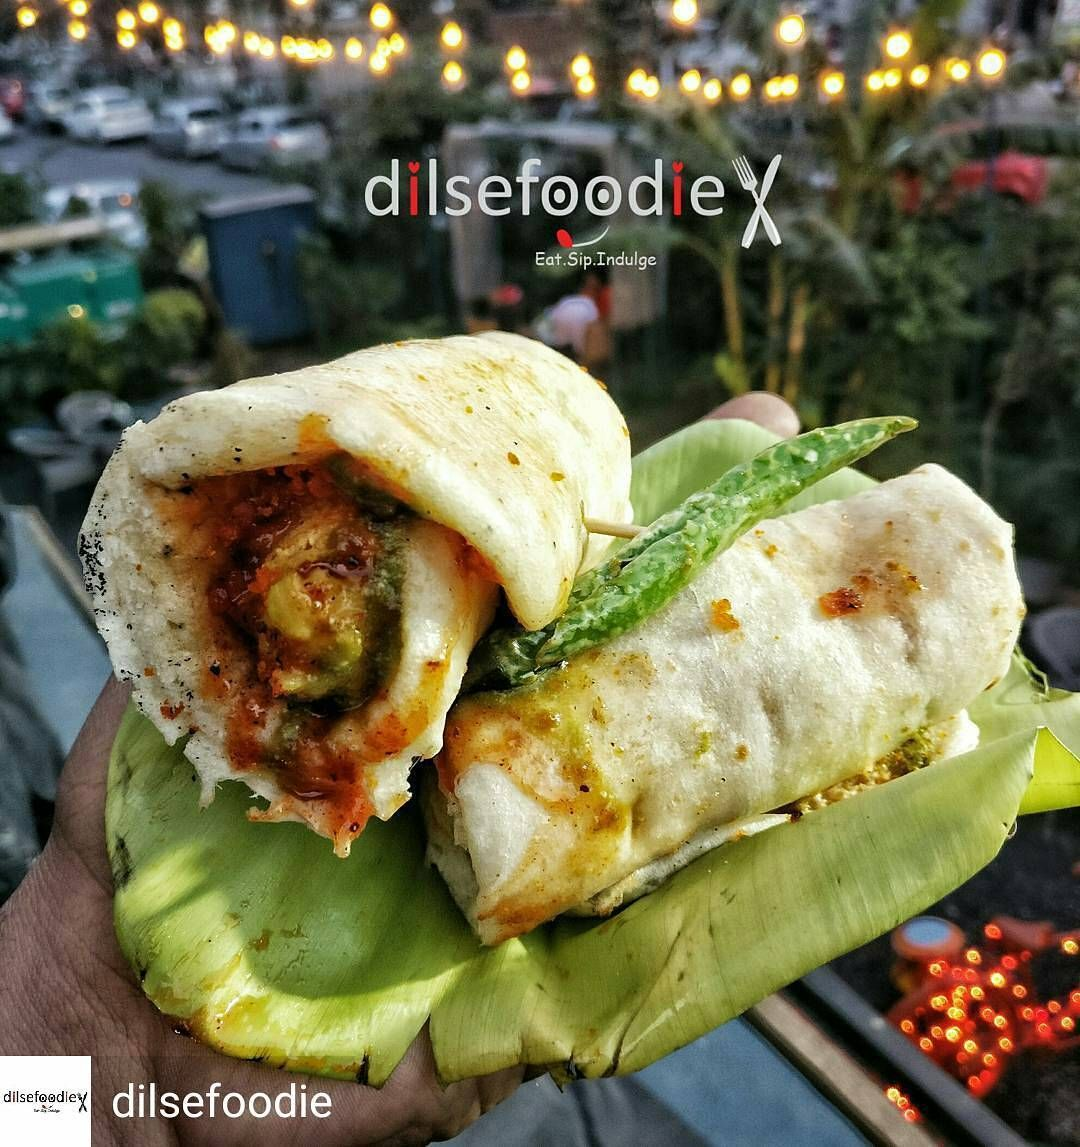 Via @dilsefoodie -  If you didn't try this yet then go and try this awsome combination of Delhi - Mumbai  KULCHA VADA   super yummm thank you @guruchelarestaurant keep doing these types of experiments.  Tag Your Vegetarian Friends With Whom You Wanna Try This Kulcha Wada  Where : Guru Chela  Cost : 89Rs  #dilsefoodie #guruchela #food #foodporn #yum #instafood #yummy #amazing #instagood #photooftheday #sweet #dinner #lunch #breakfast #fresh #tasty #food #delish #delicious #eating #foodpic…